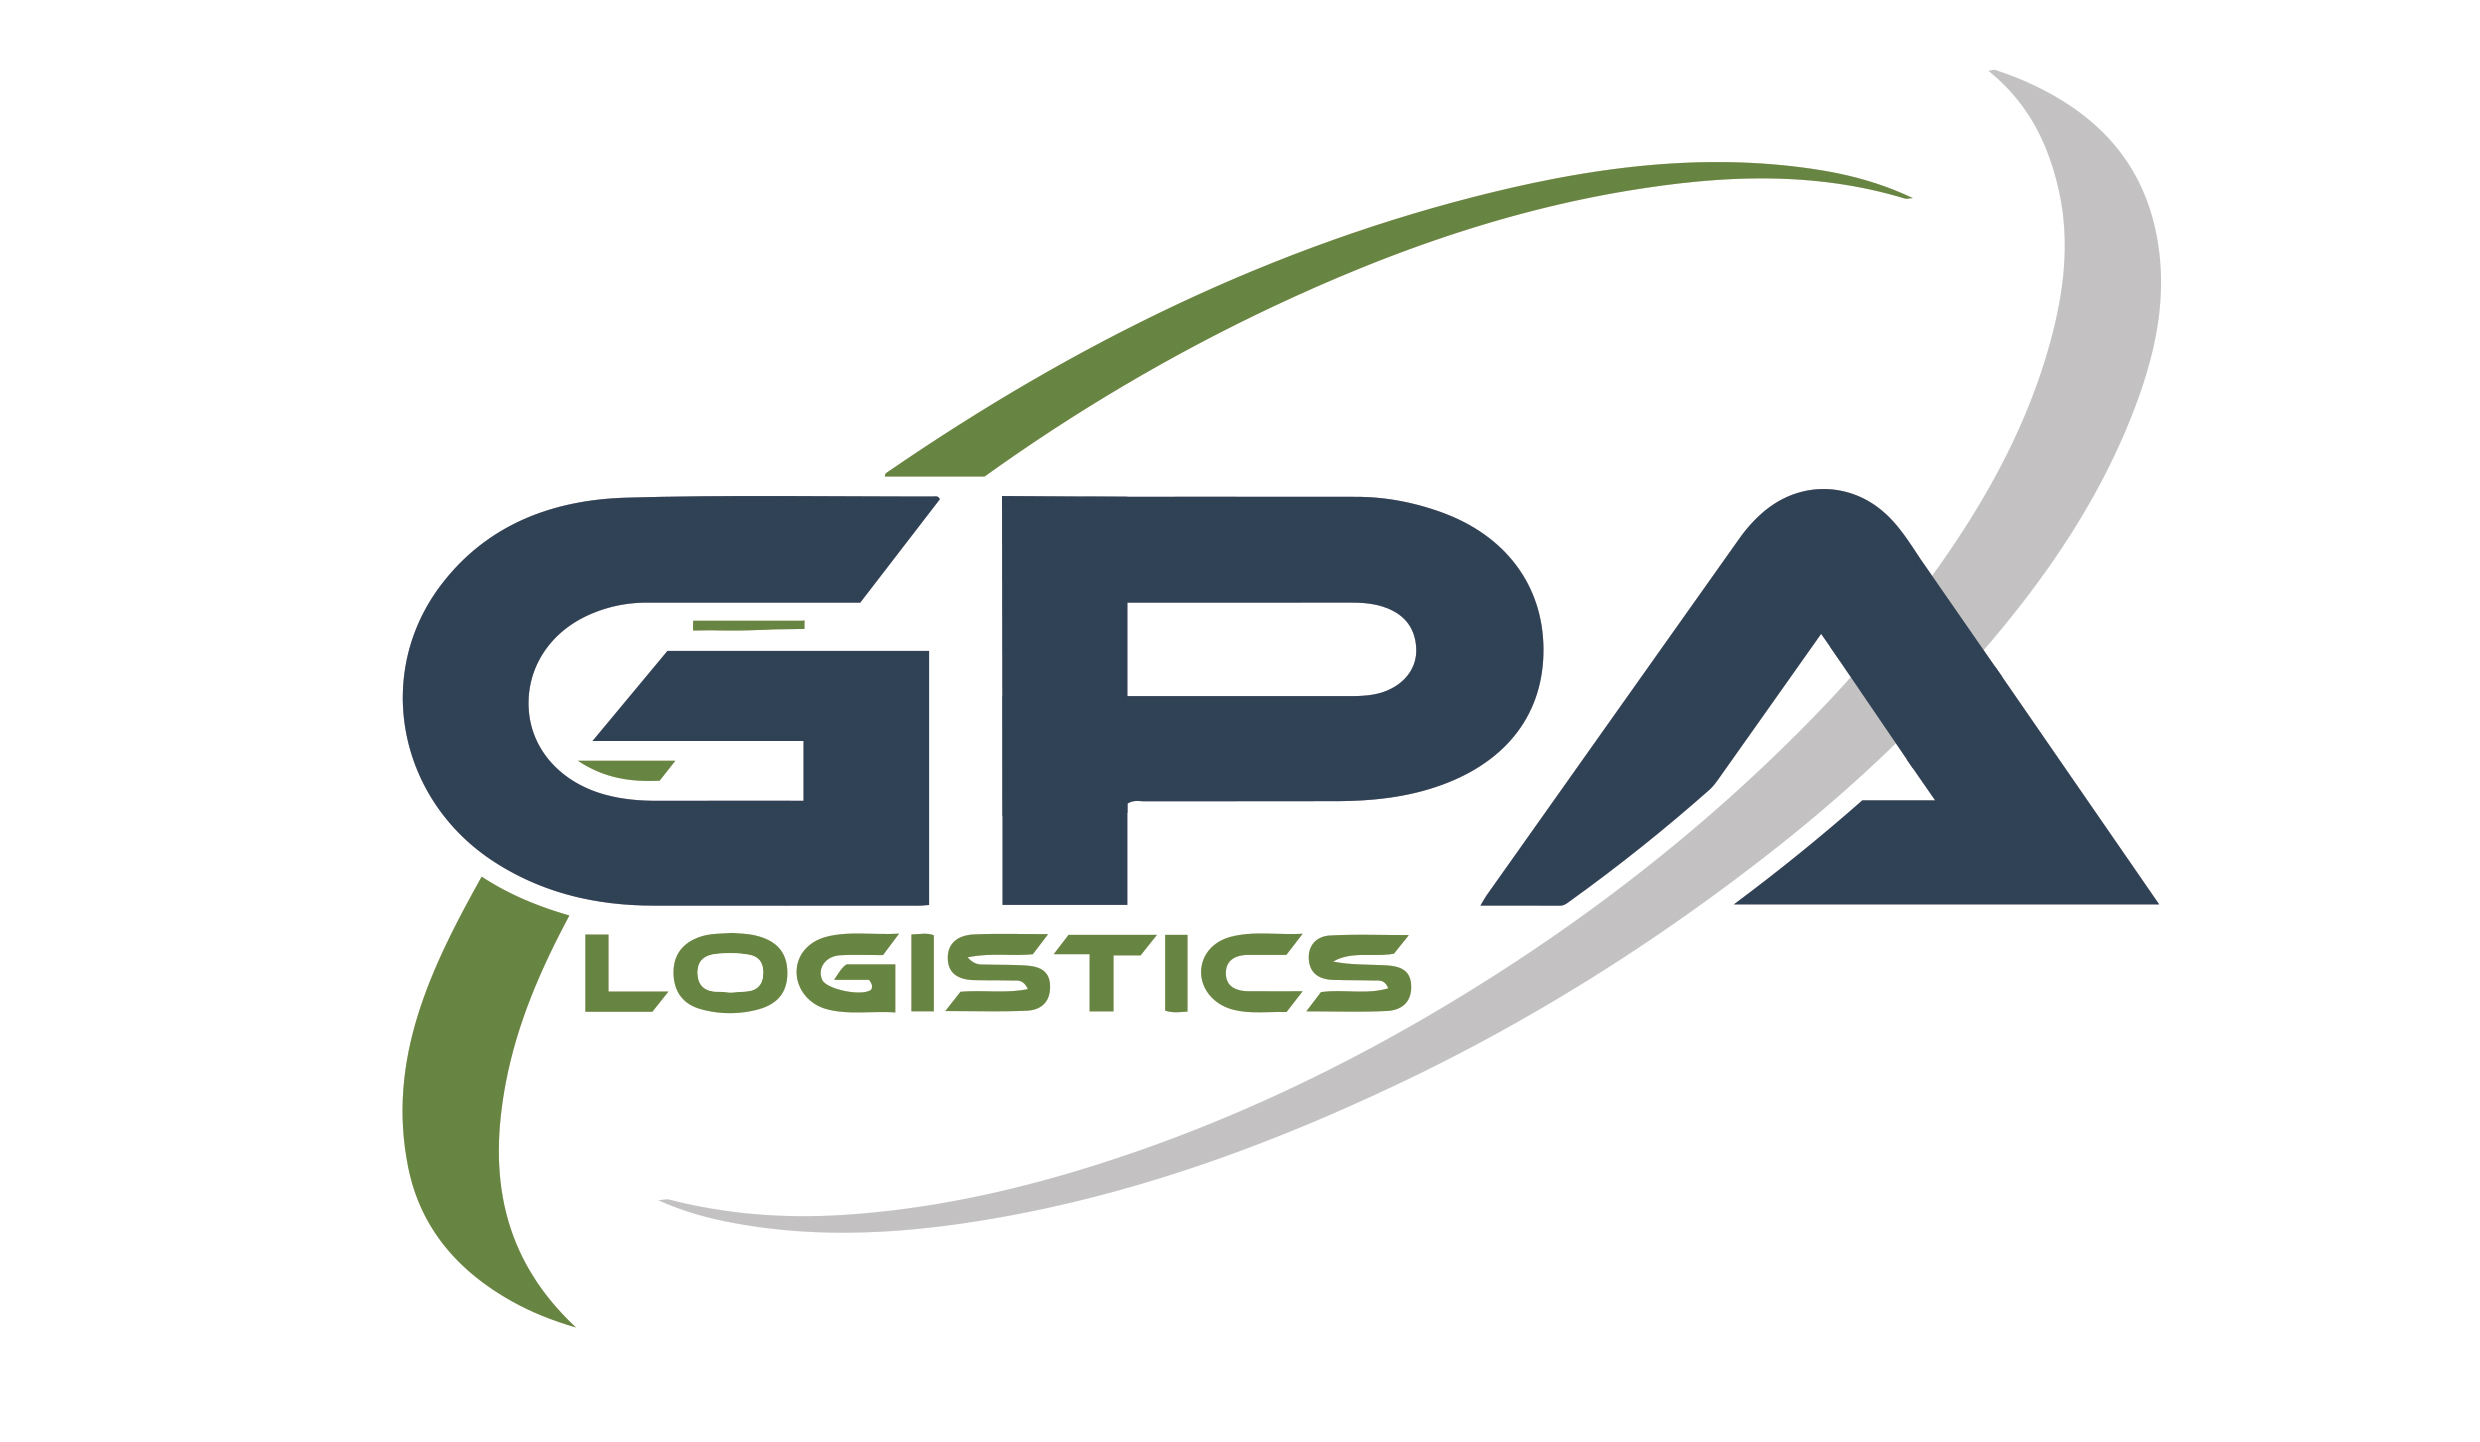 Accueil  Gpa Logistics. Alhambra Murals. George Best Murals. Suicidal Thoughts Signs. Mental Signs Of Stroke. Placard Handicap. Letter Wall Decals. Tulip Stickers. Baseball Lettering